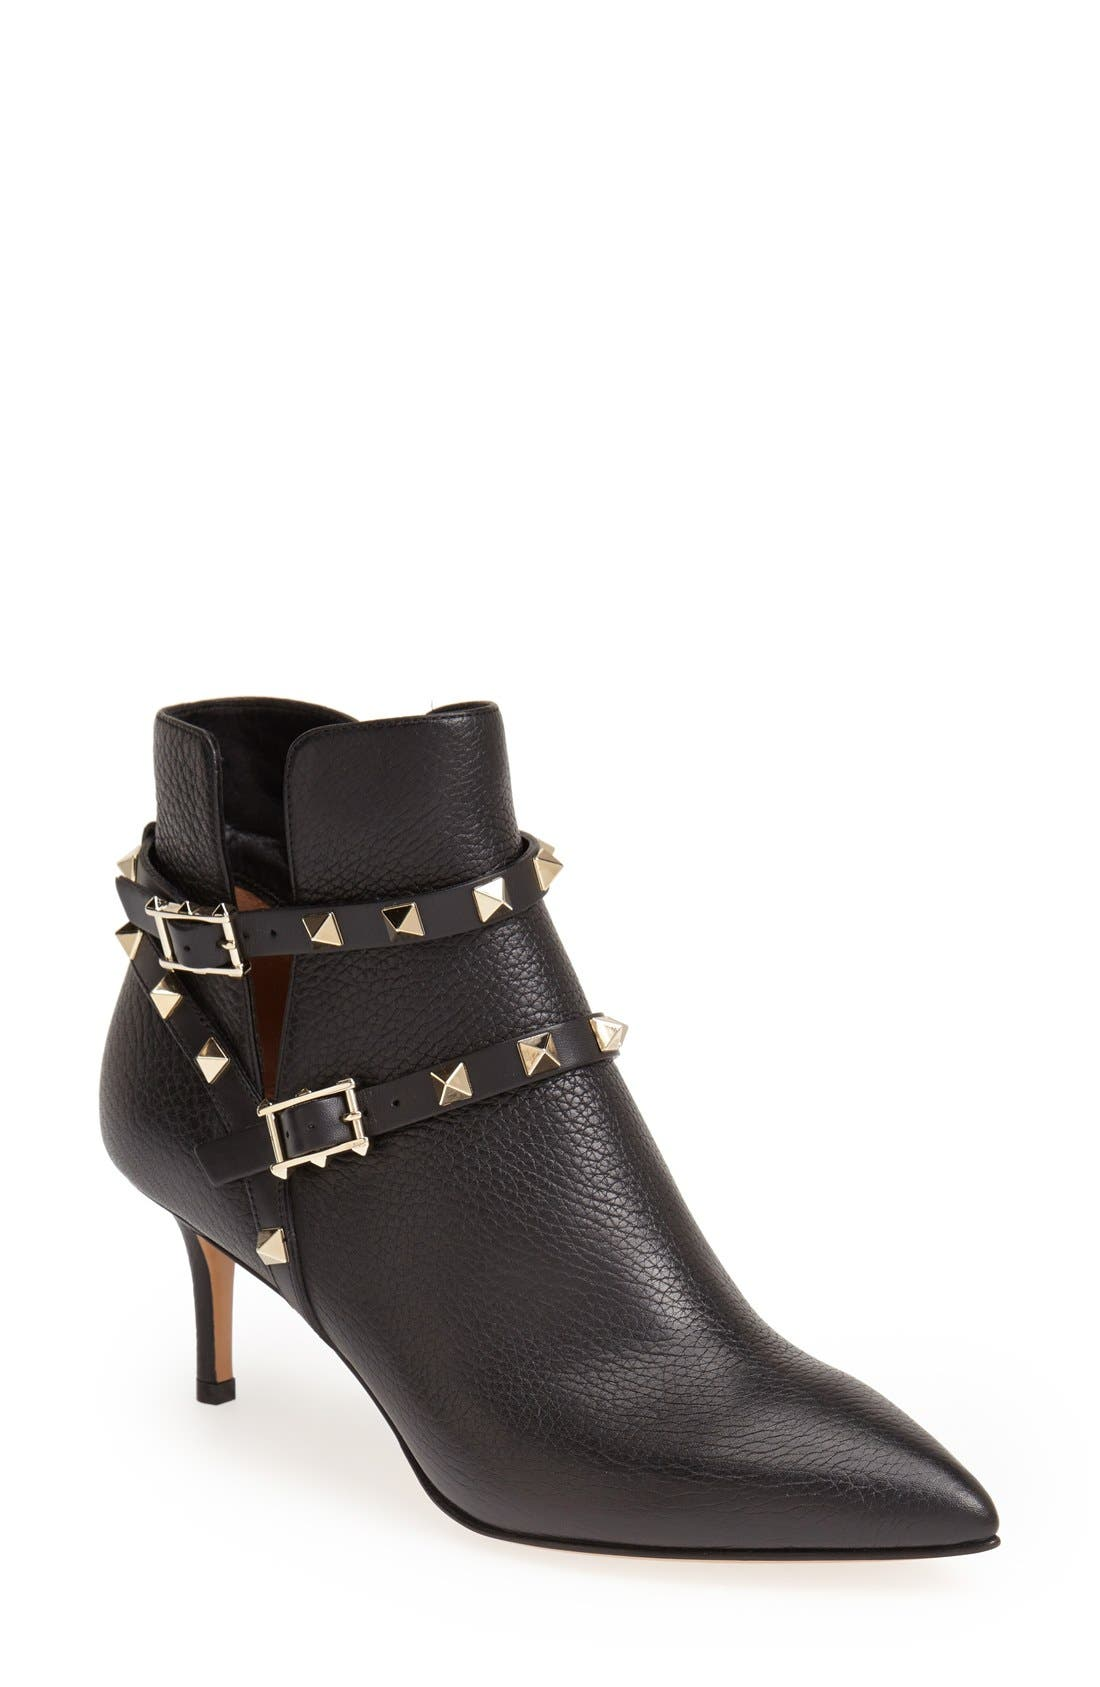 Alternate Image 1 Selected - Valentino 'Rockstud' Pointy Toe Calfskin Leather Bootie (Women)